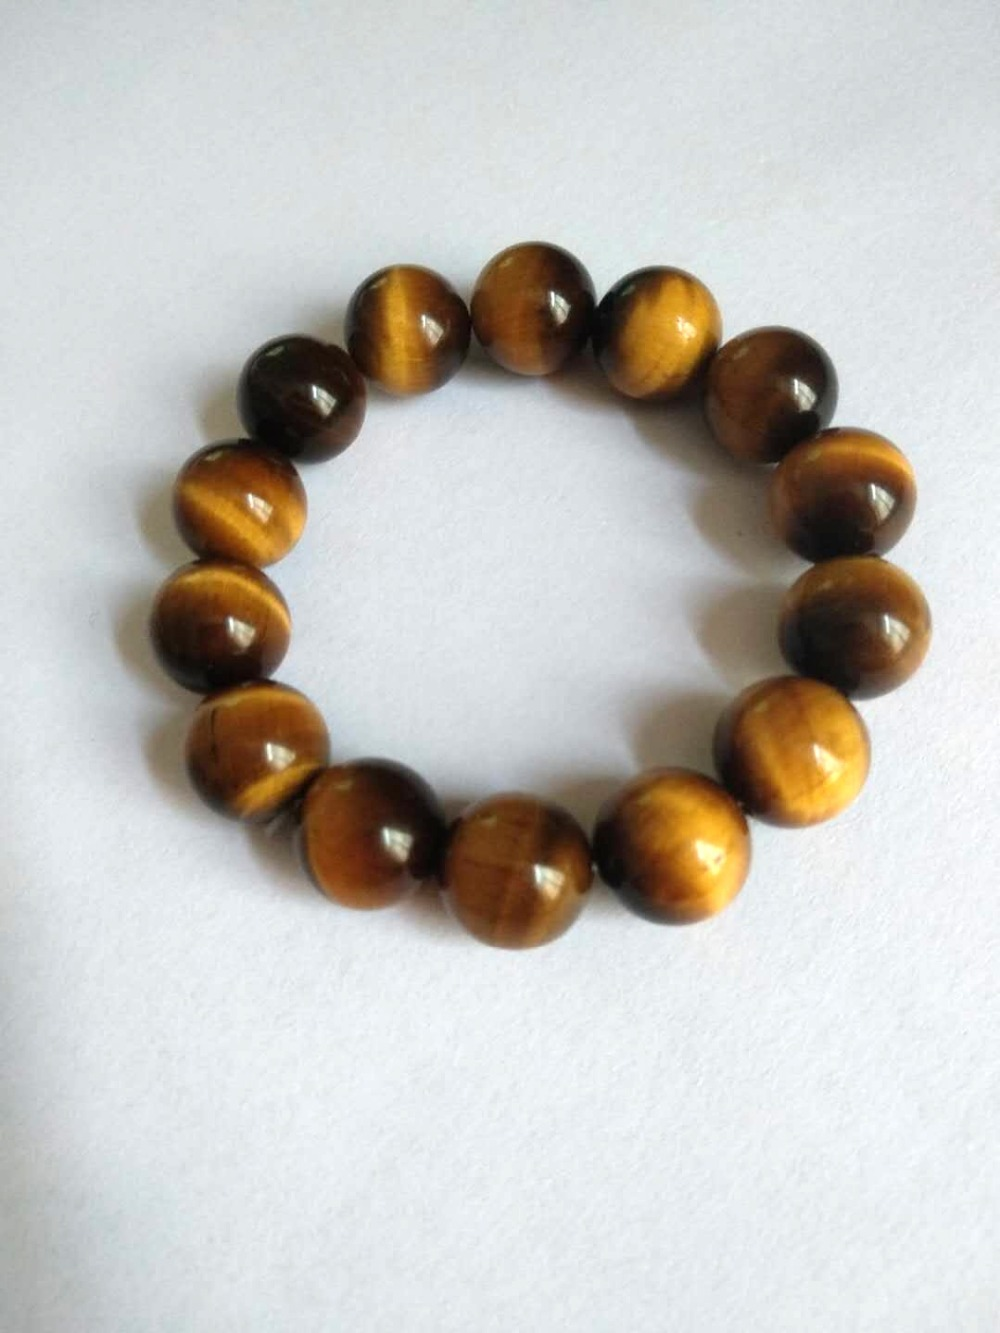 10mm Natural Yellow Tiger Eye Stone Bead Bracelet